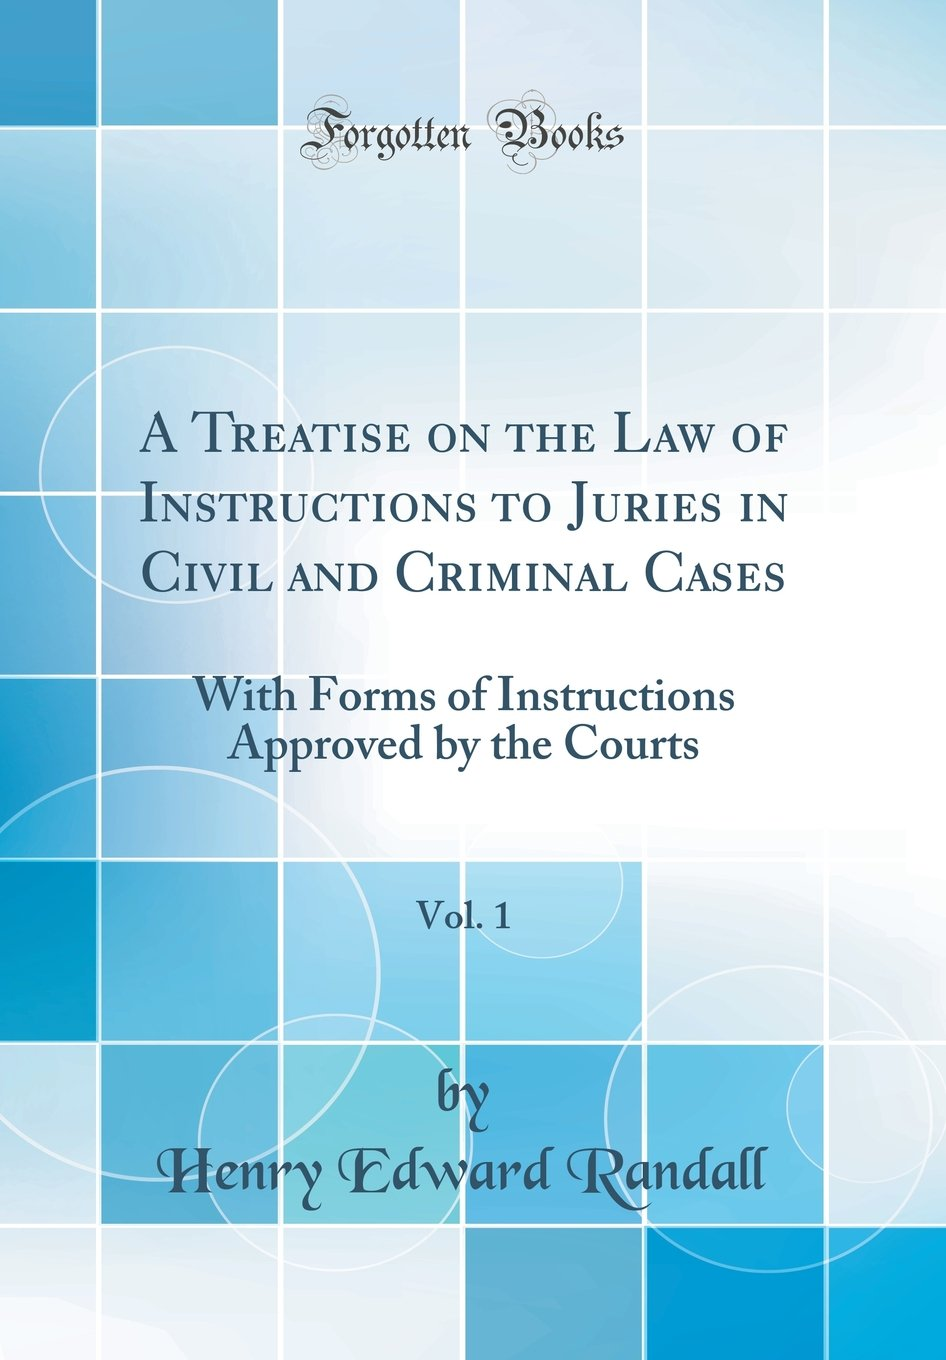 Download A Treatise on the Law of Instructions to Juries in Civil and Criminal Cases, Vol. 1: With Forms of Instructions Approved by the Courts (Classic Reprint) pdf epub